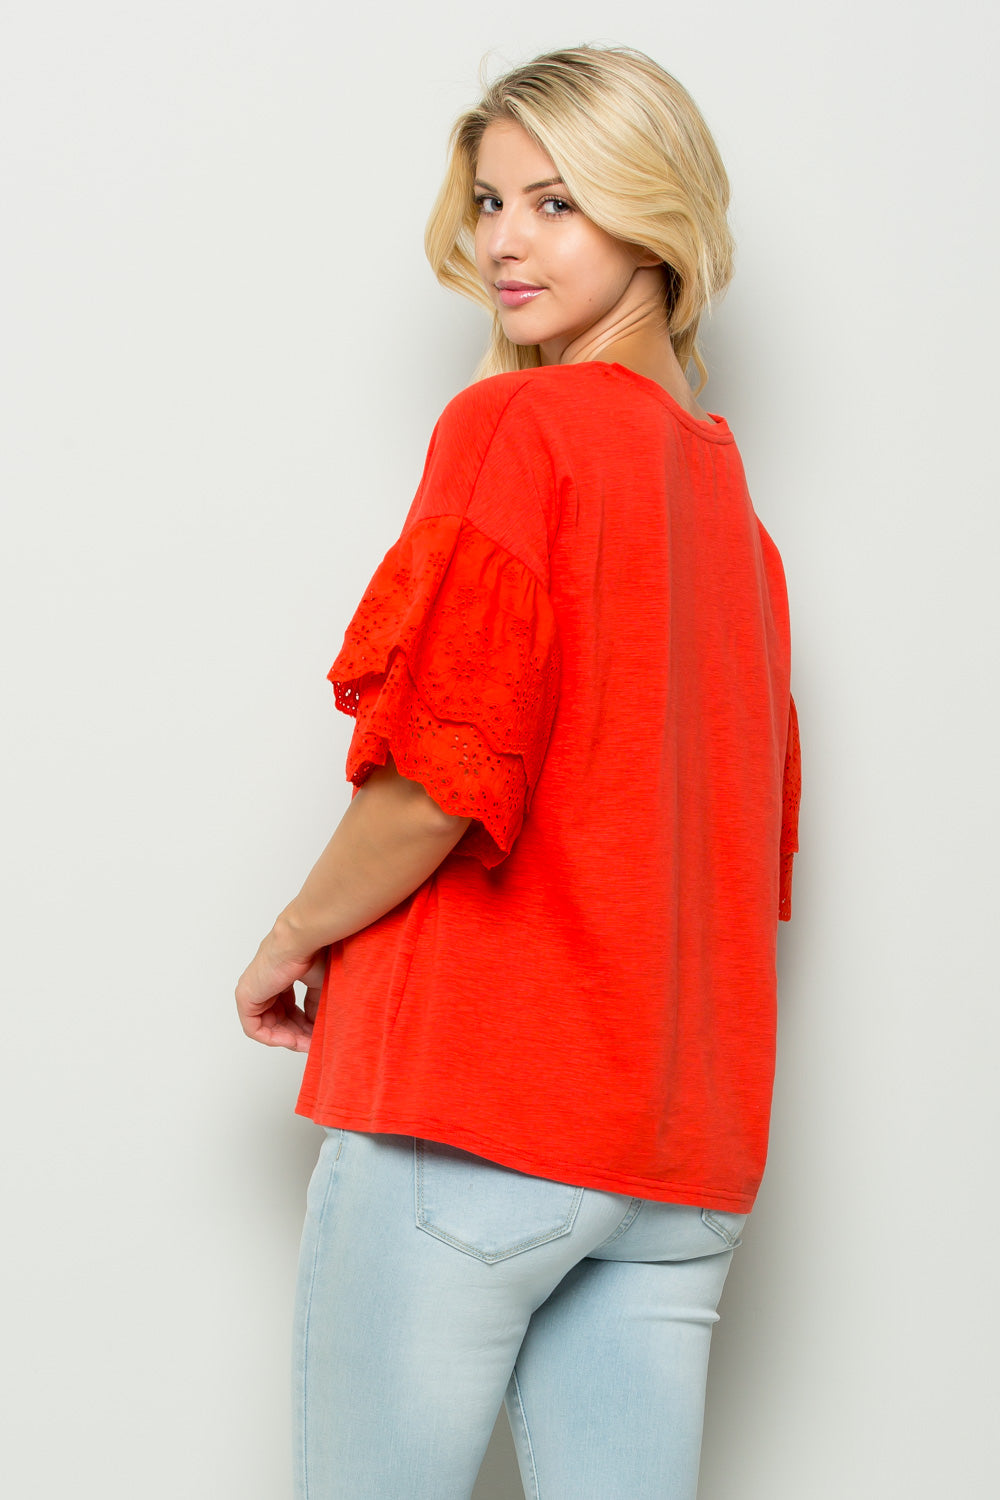 T2442 Double Eyelet Ruffle sleeve Top - Red